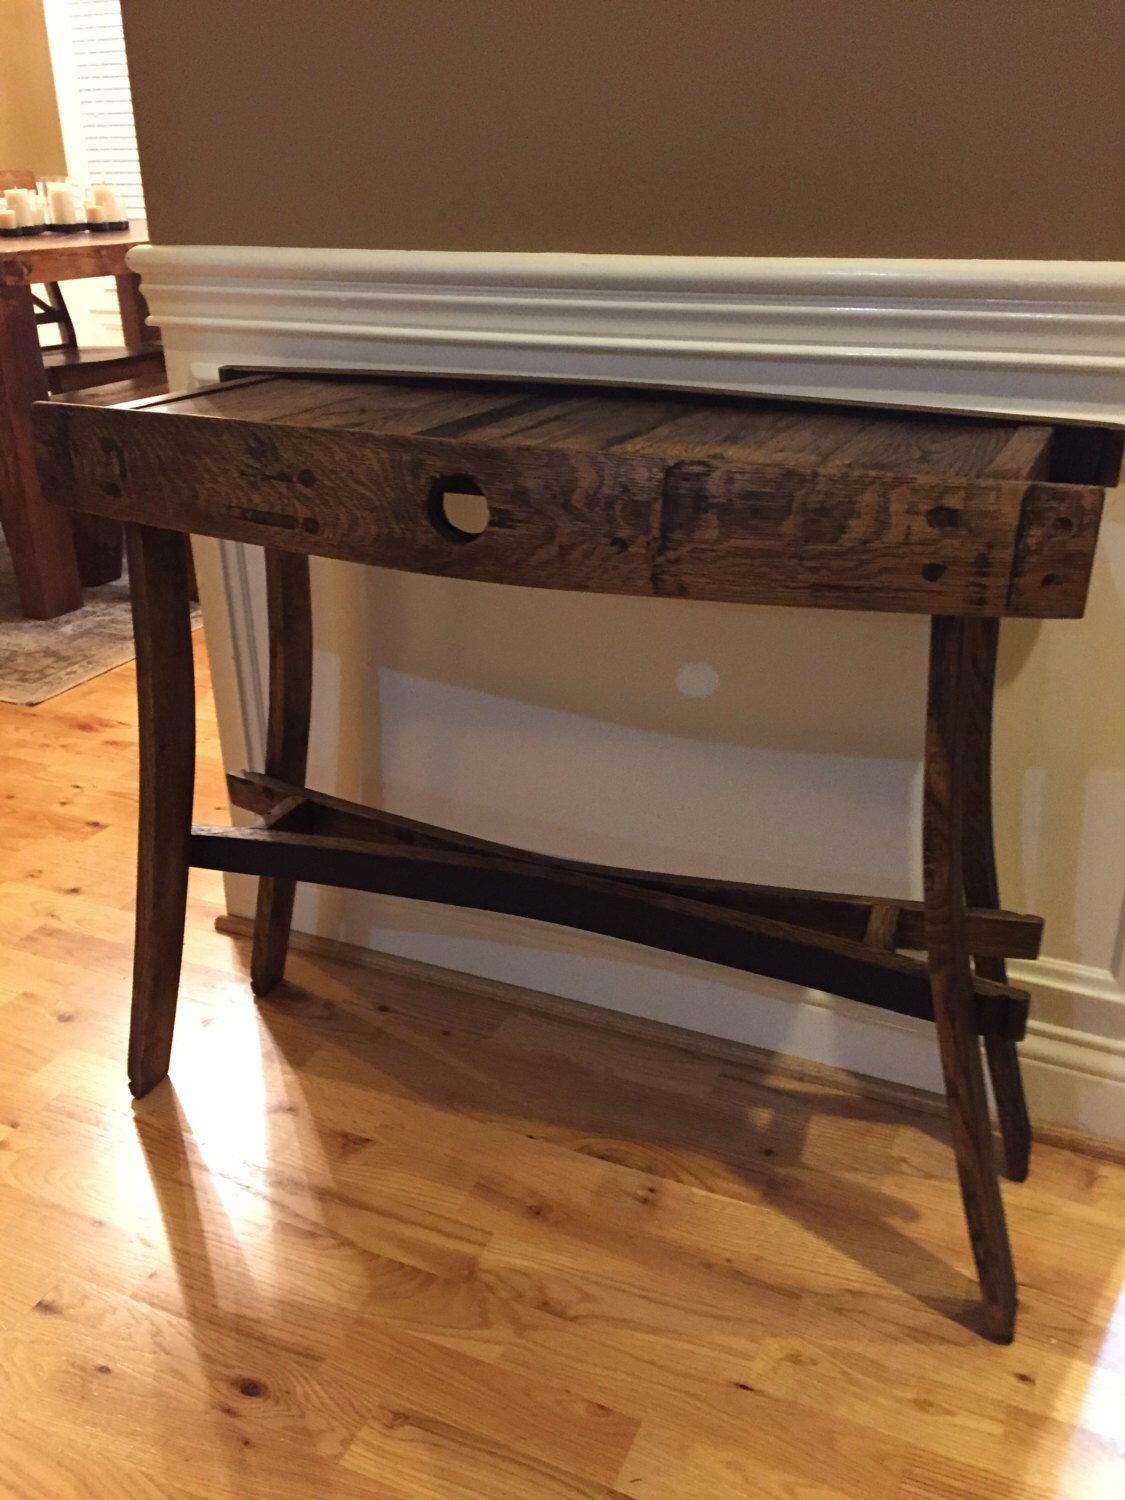 Bourbon Barrel Entry Table By BEcustomwooddesigns On Etsy Https://www.etsy.